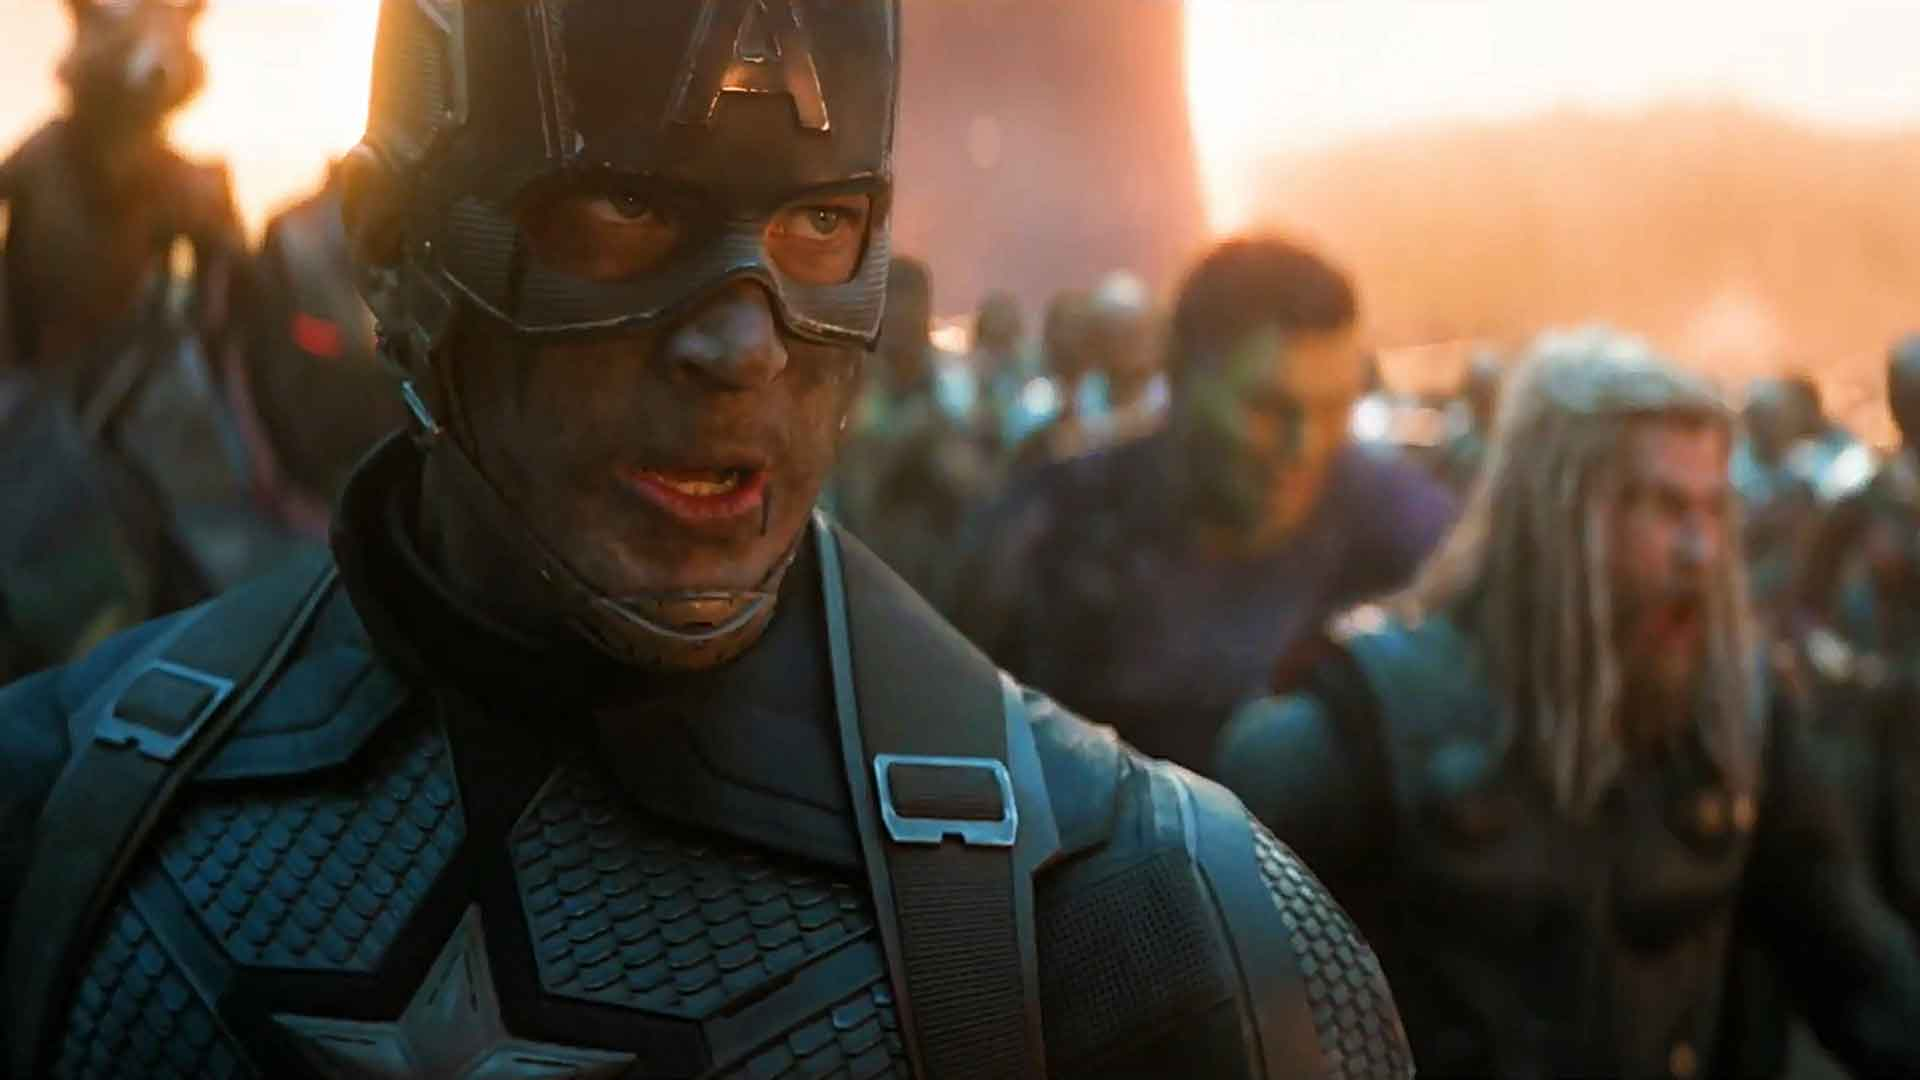 Avengers Assemble Scene From Endgame Released Online In Hd 1080p